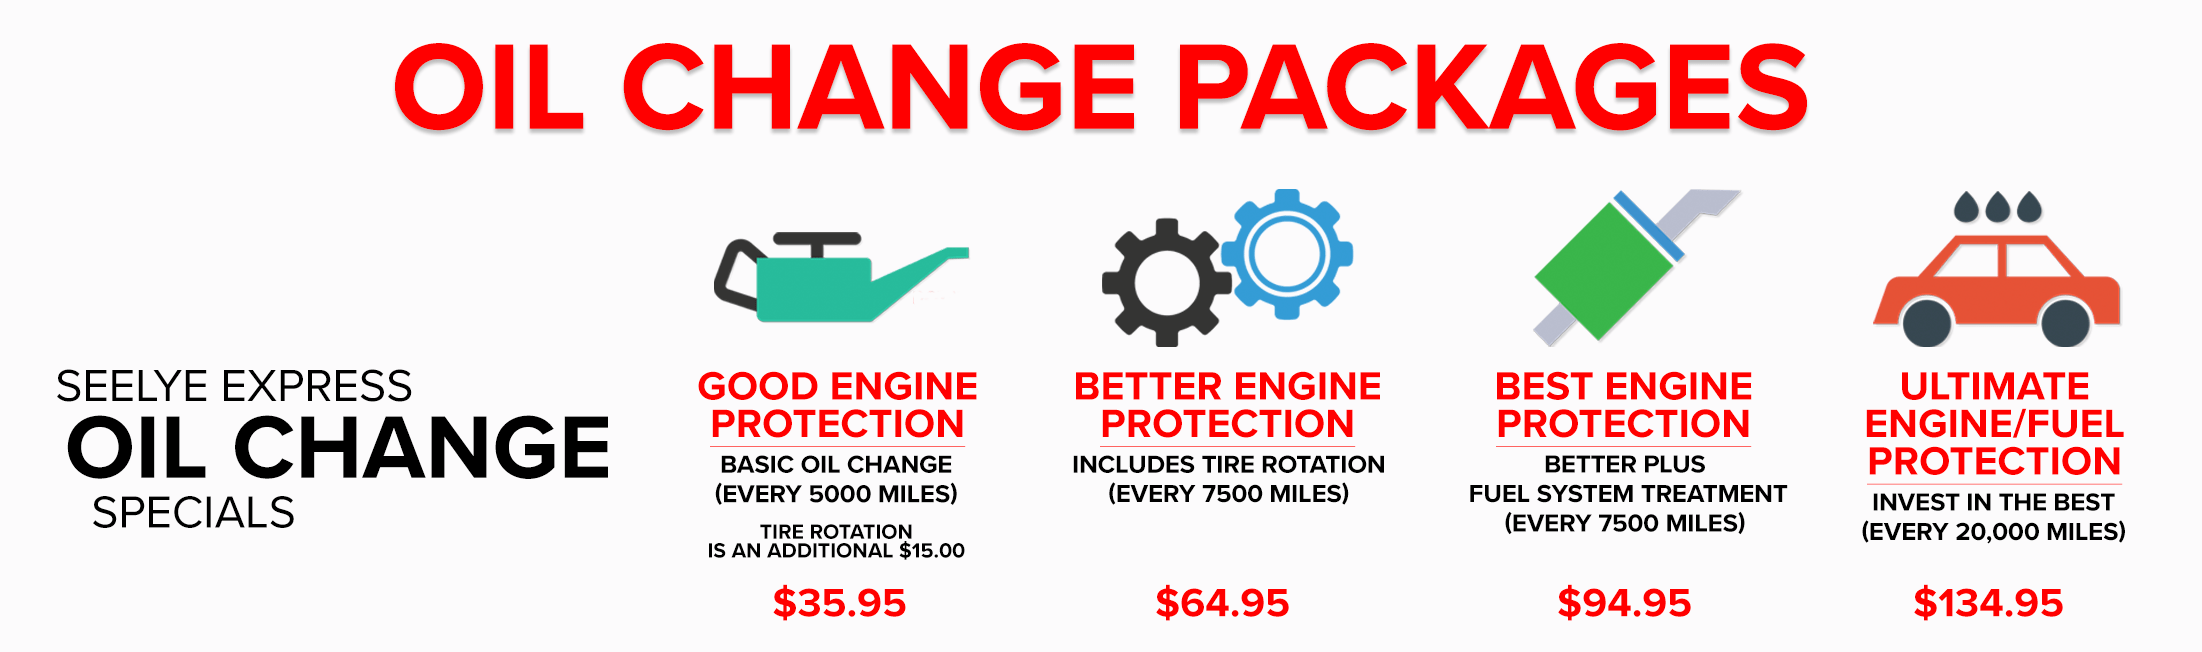 Seelye Oil Change Packages